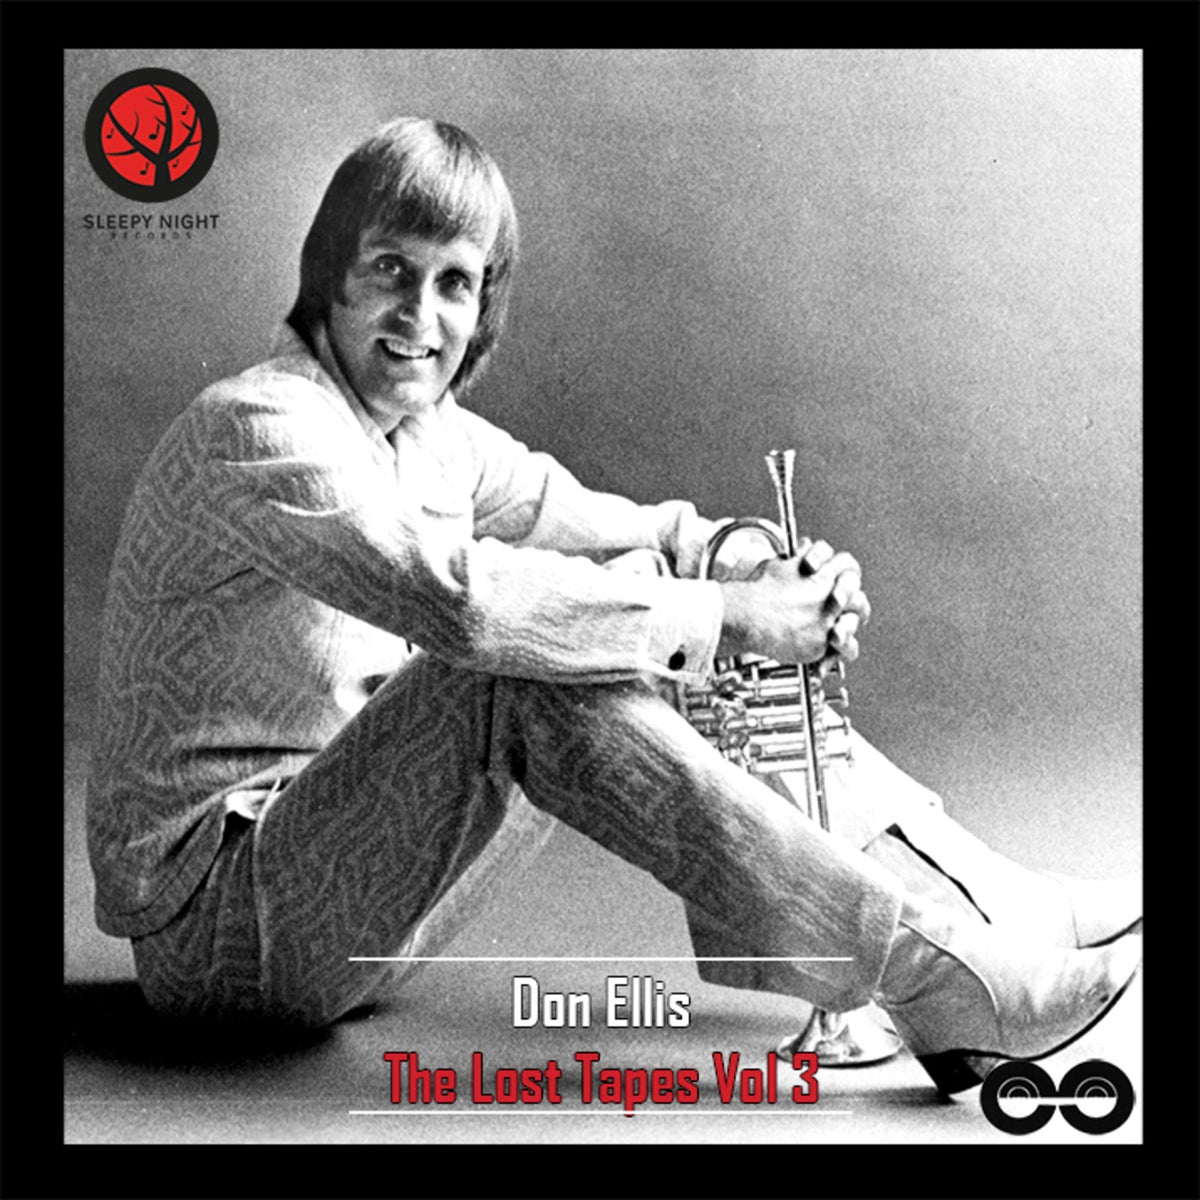 Image of Don Ellis The Lost Tapes Vol 3